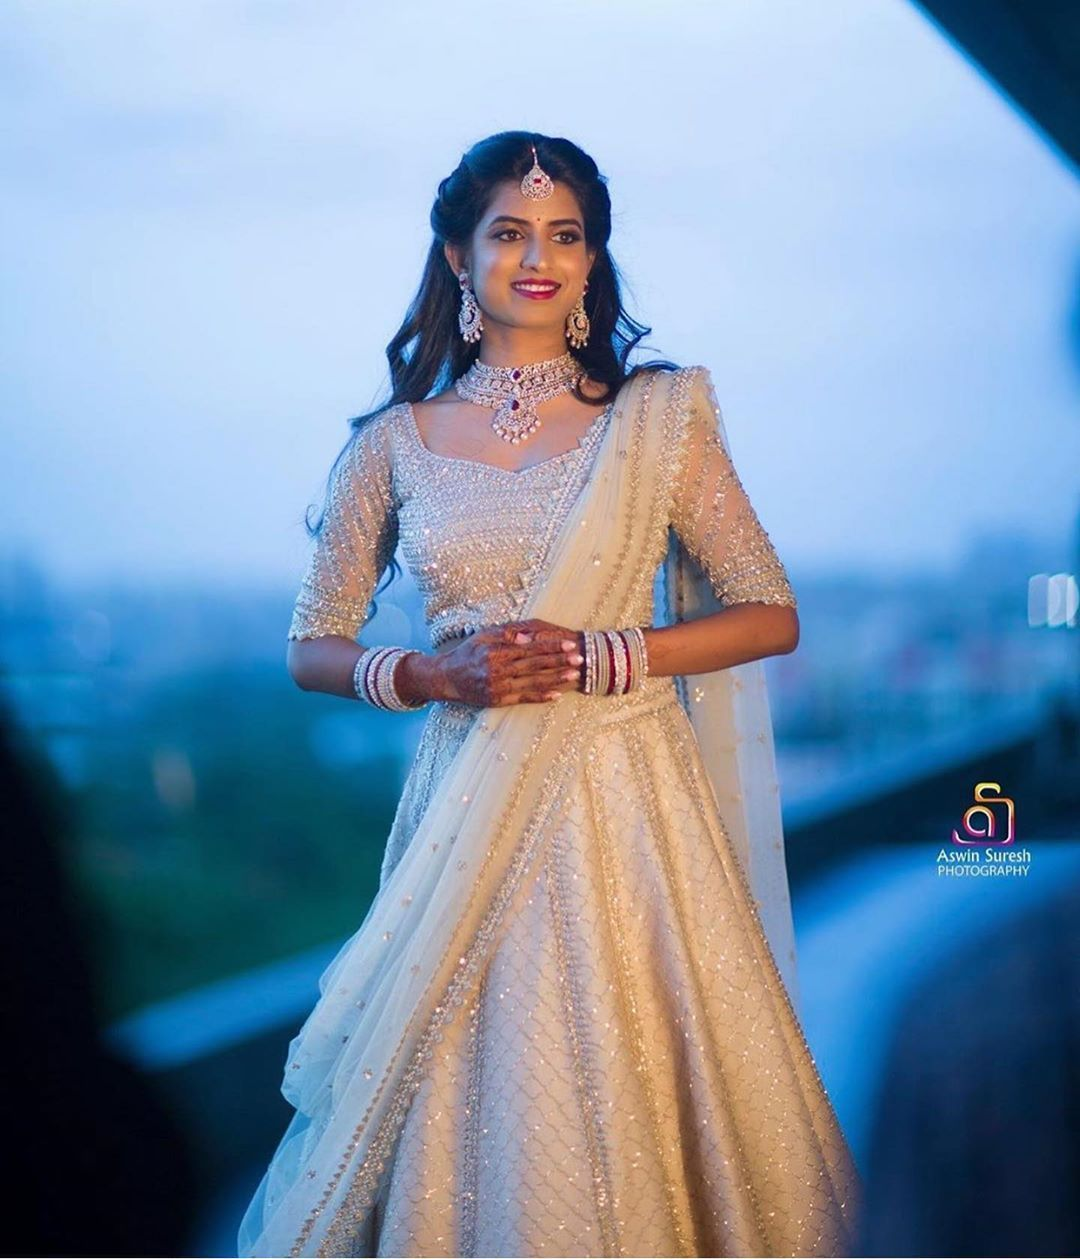 Hyderabad Bridal Inspiration On Instagram Stunning Bride Photo By Aswin Suresh Photogra Indian Bridal Dress Indian Bridal Fashion Indian Bridal Outfits